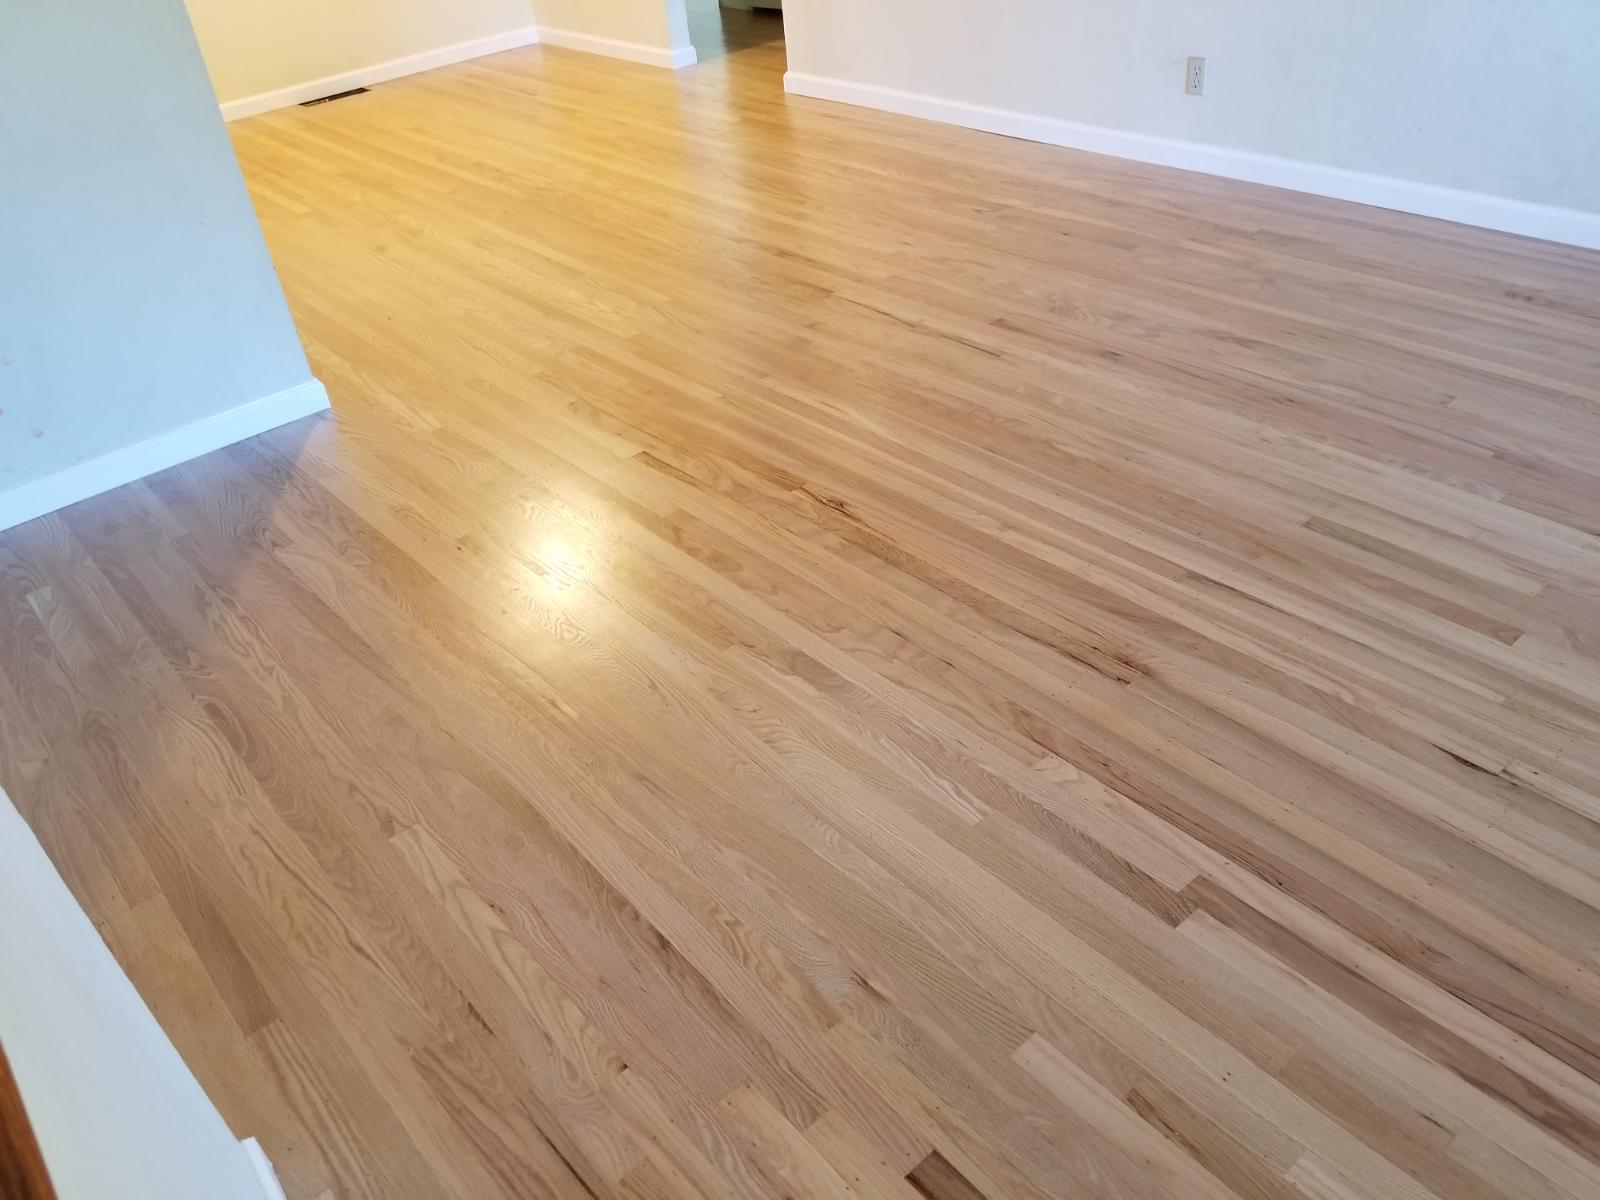 Sunnyvale residential, dining & living rooms: Install 375 square feet red oak hardwood flooring; remove 25-year old  carpeting and repair 125 square foot flooring and repair, sand, and coat with three finishes